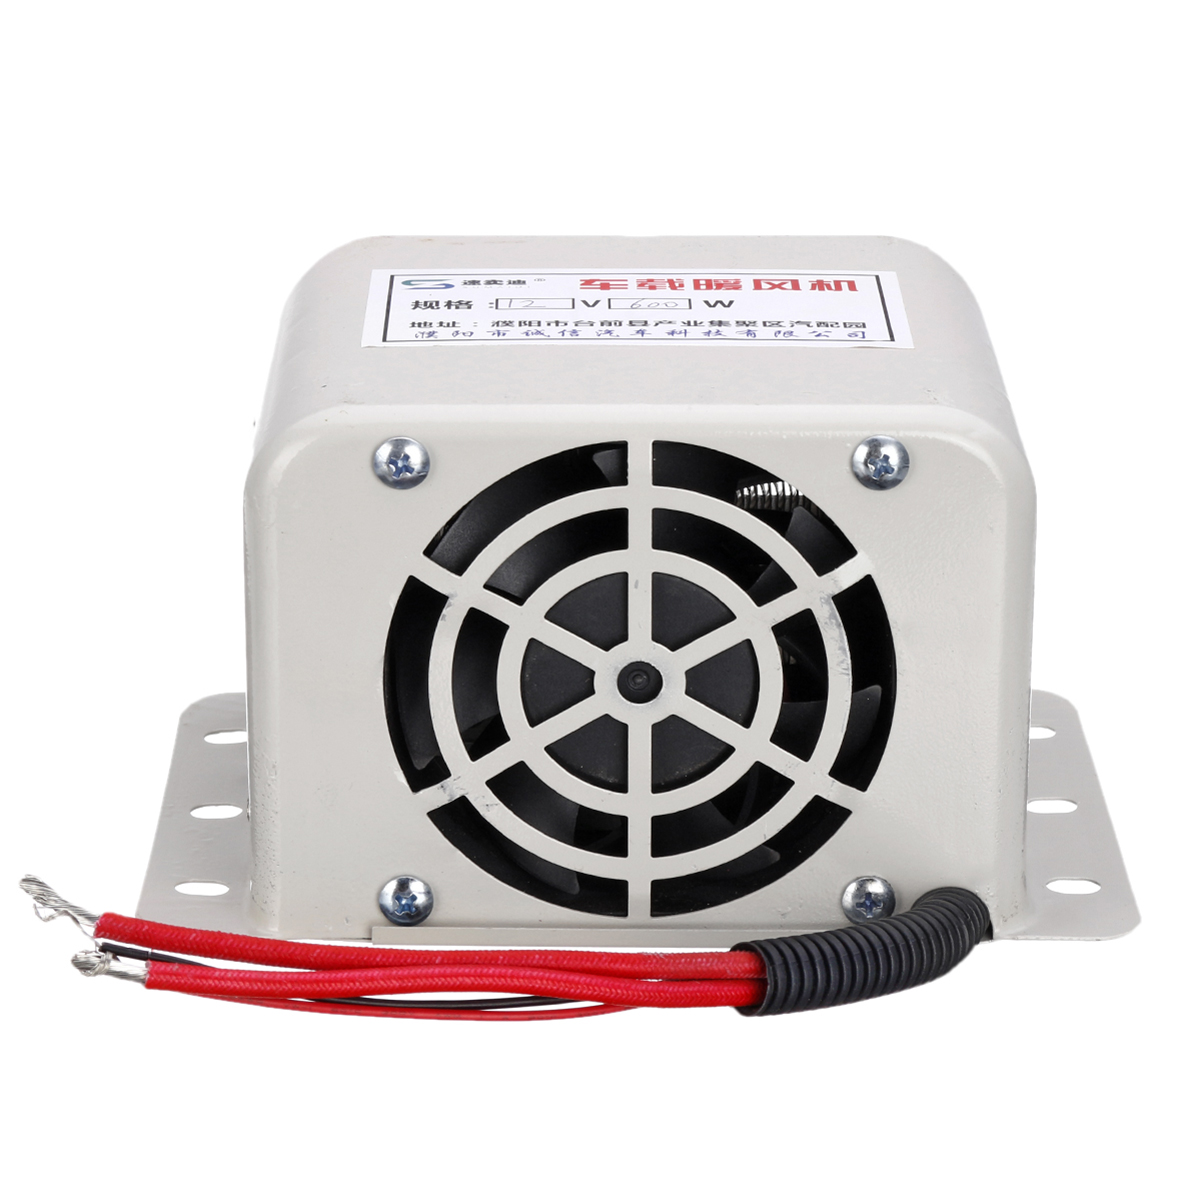 12V 600W White Dual Port PTC Heating Car Heater Heating Defroster